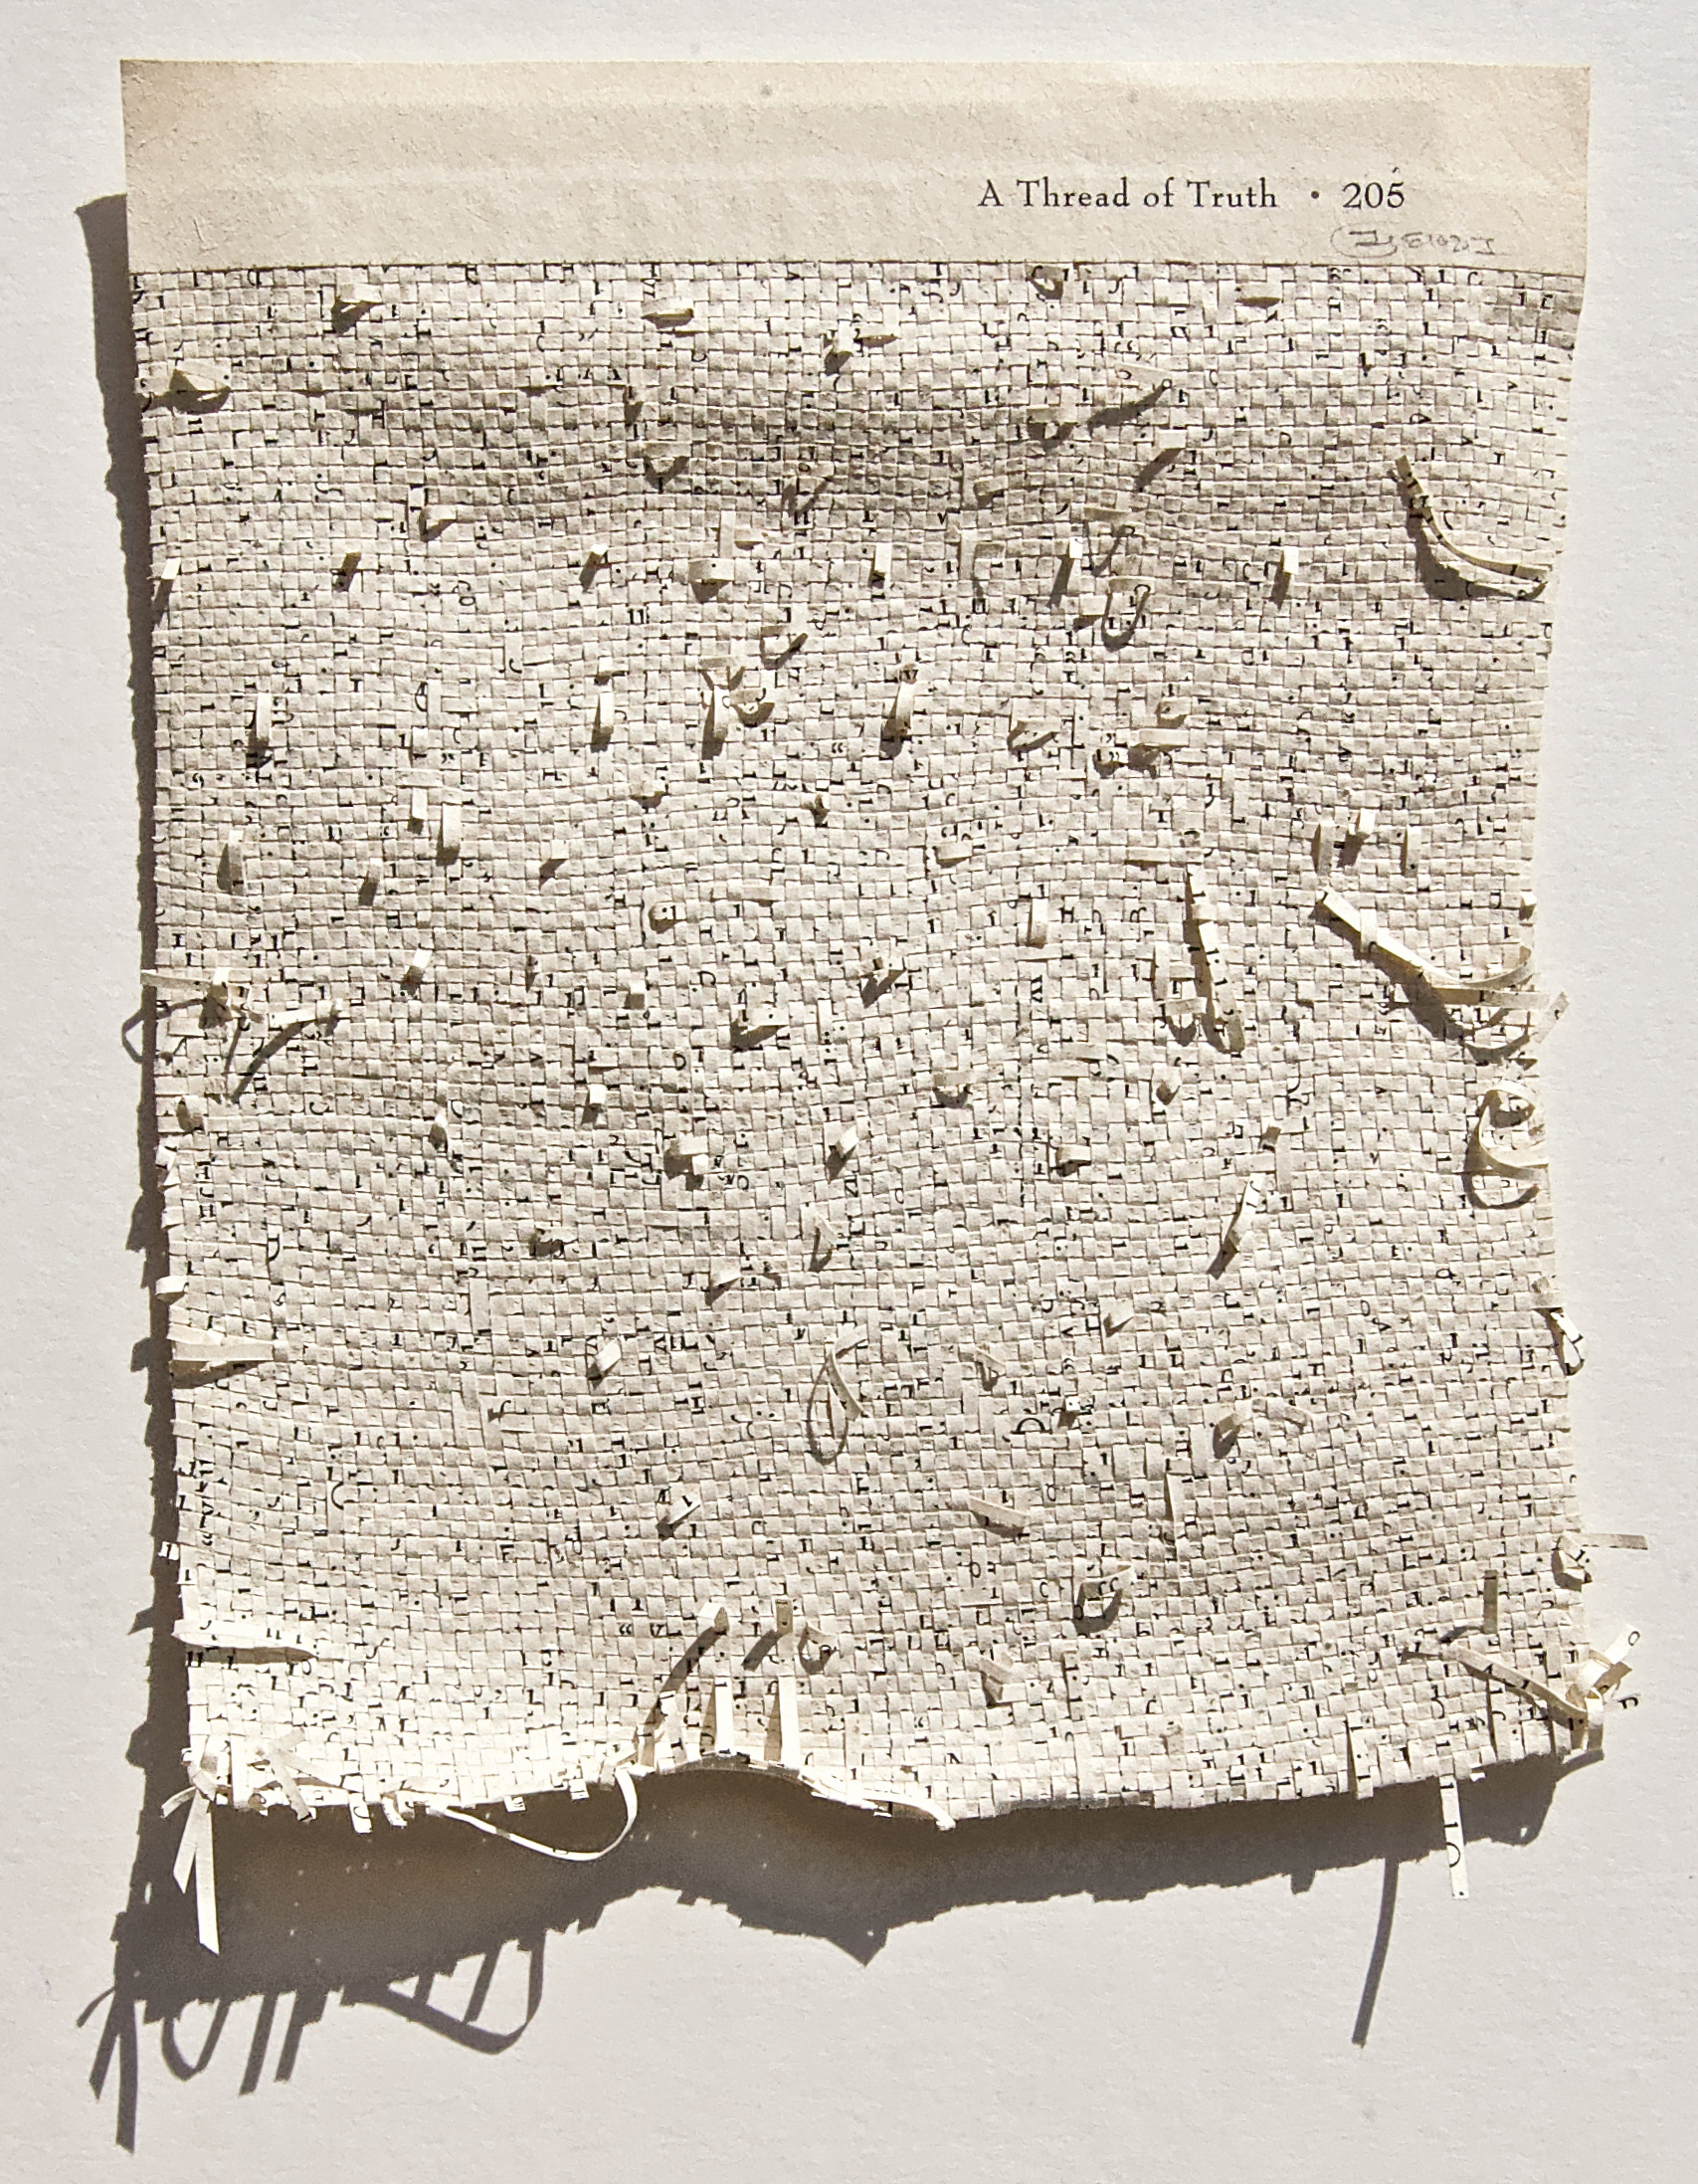 The Thread of Truth, hand-cut deacidified pages of reclaimed book | Youdhisthir Maharjan | STIRworld